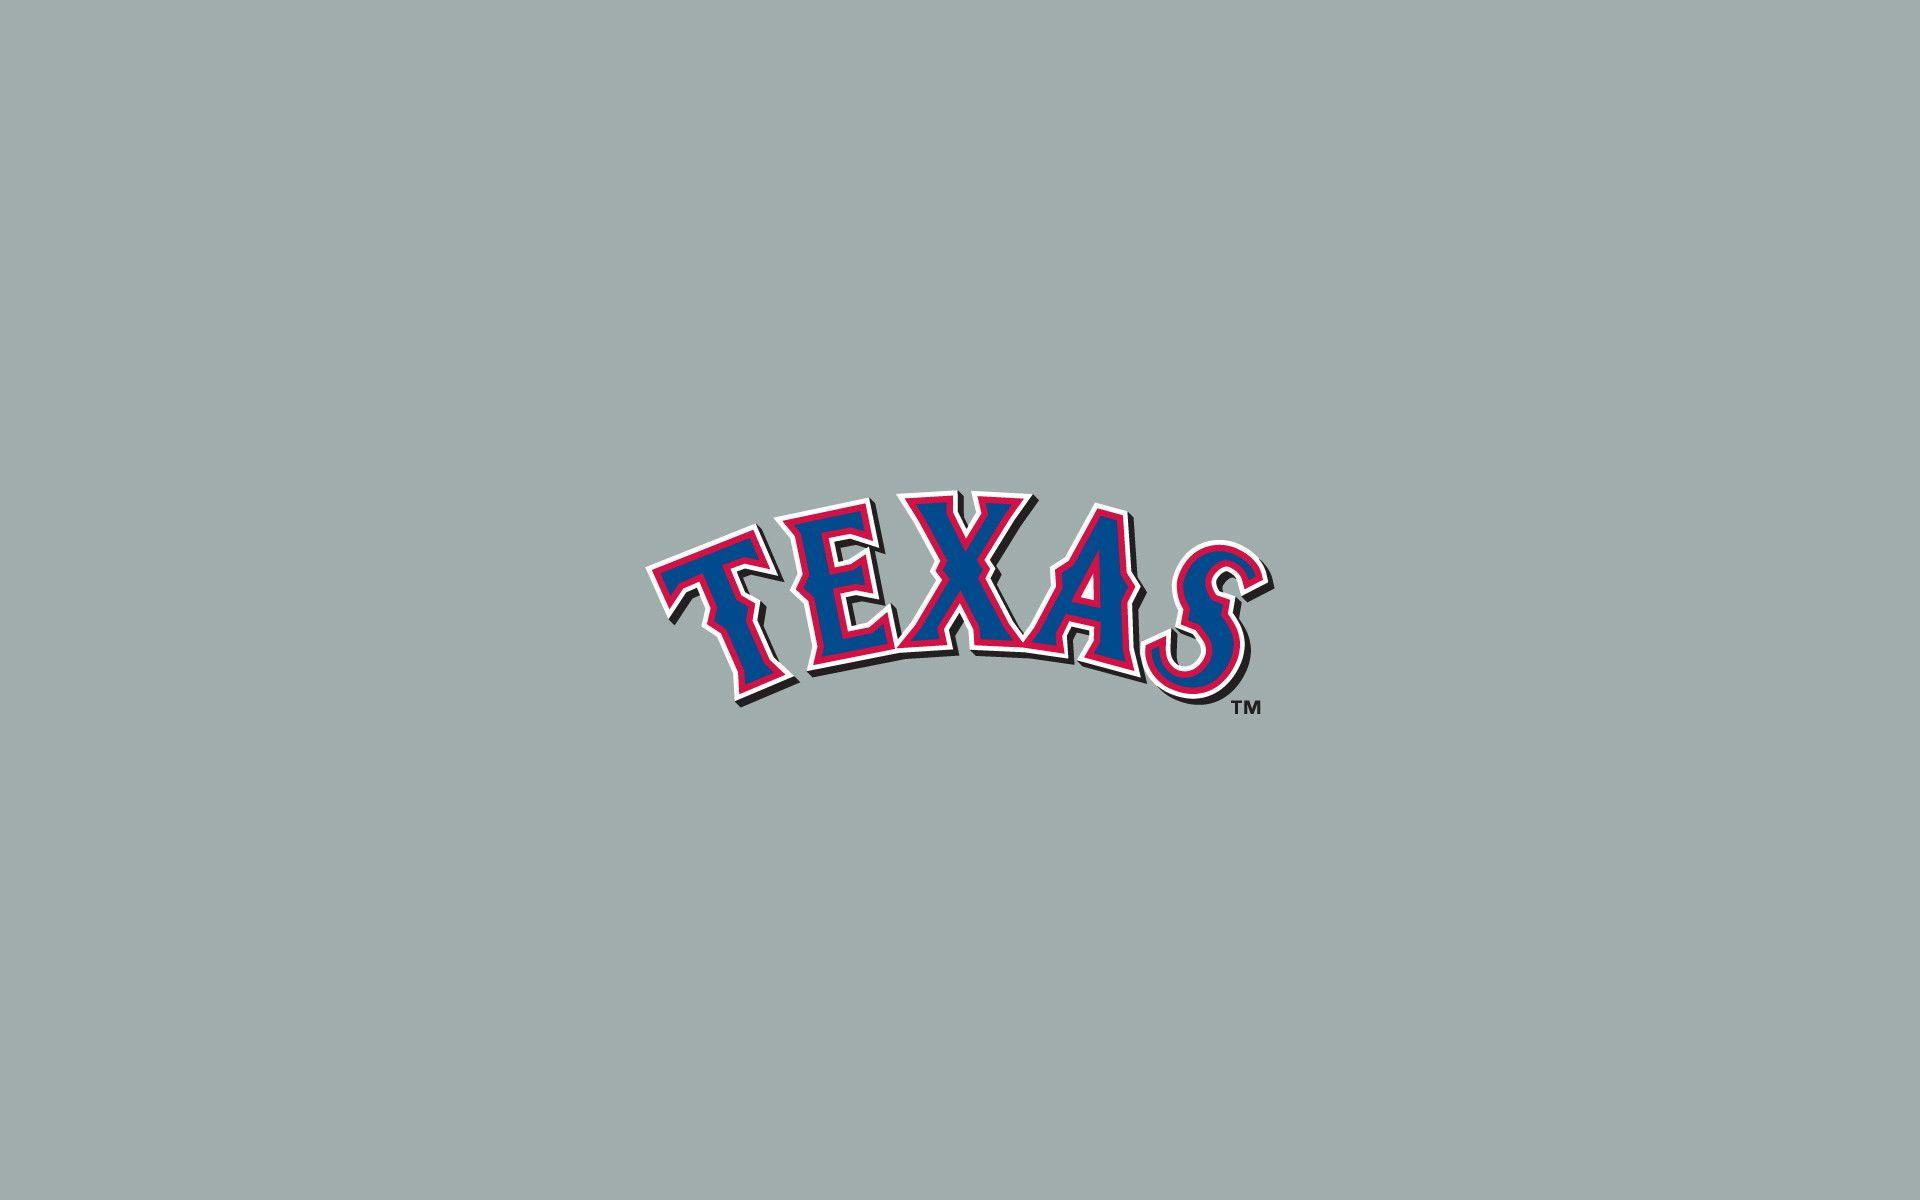 texas rangers 2018 wallpapers - wallpaper cave